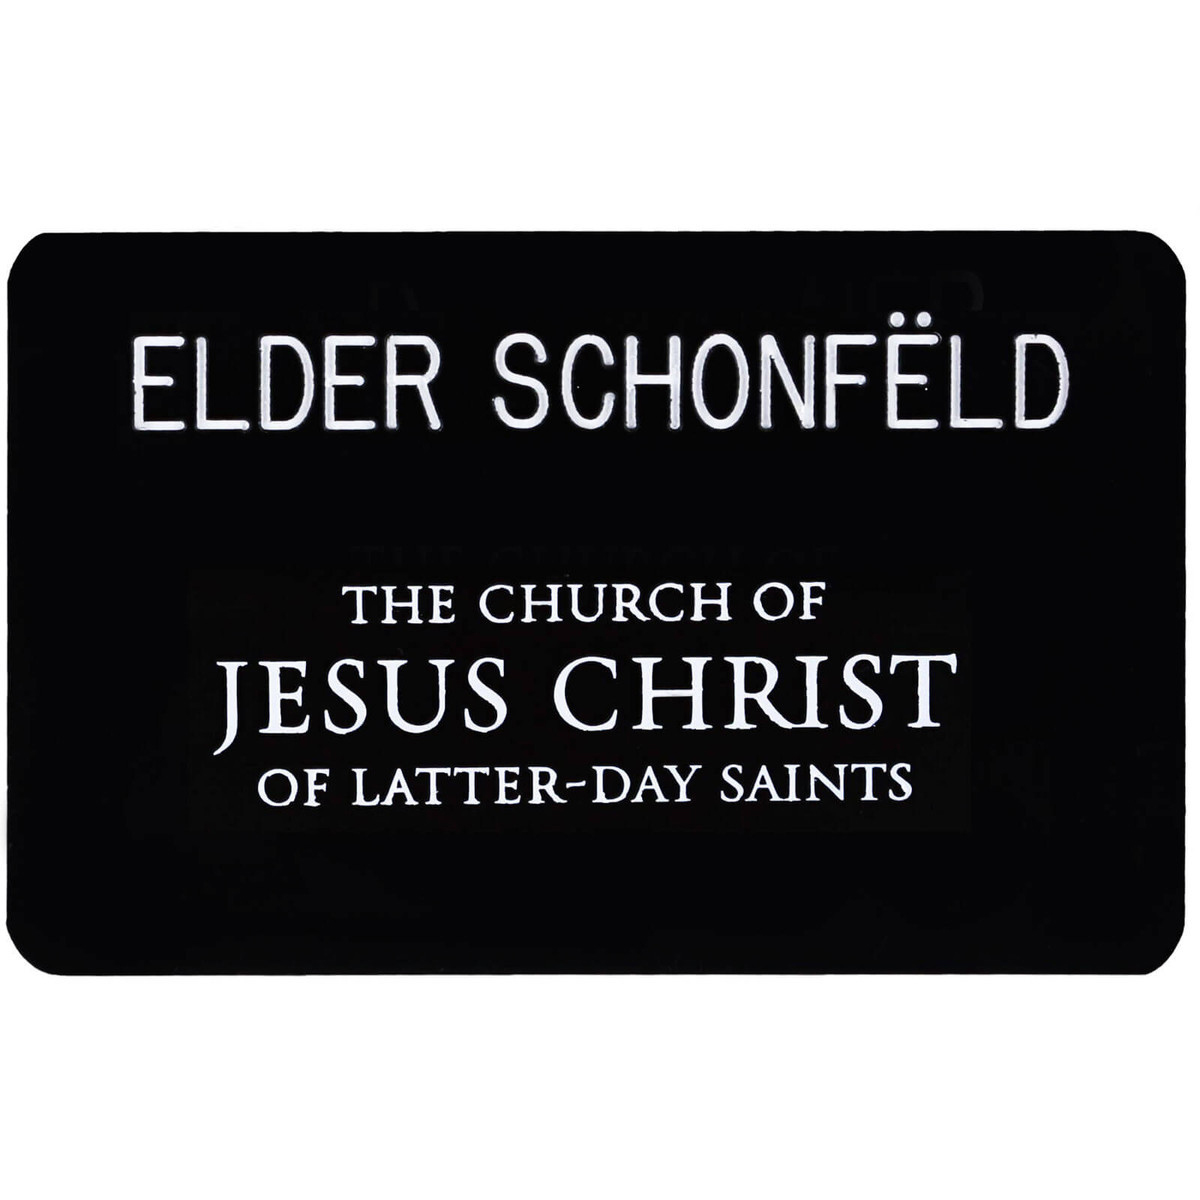 image about Lds Missionary Name Tag Printable named Missionary Popularity Tag - Opt for Programs